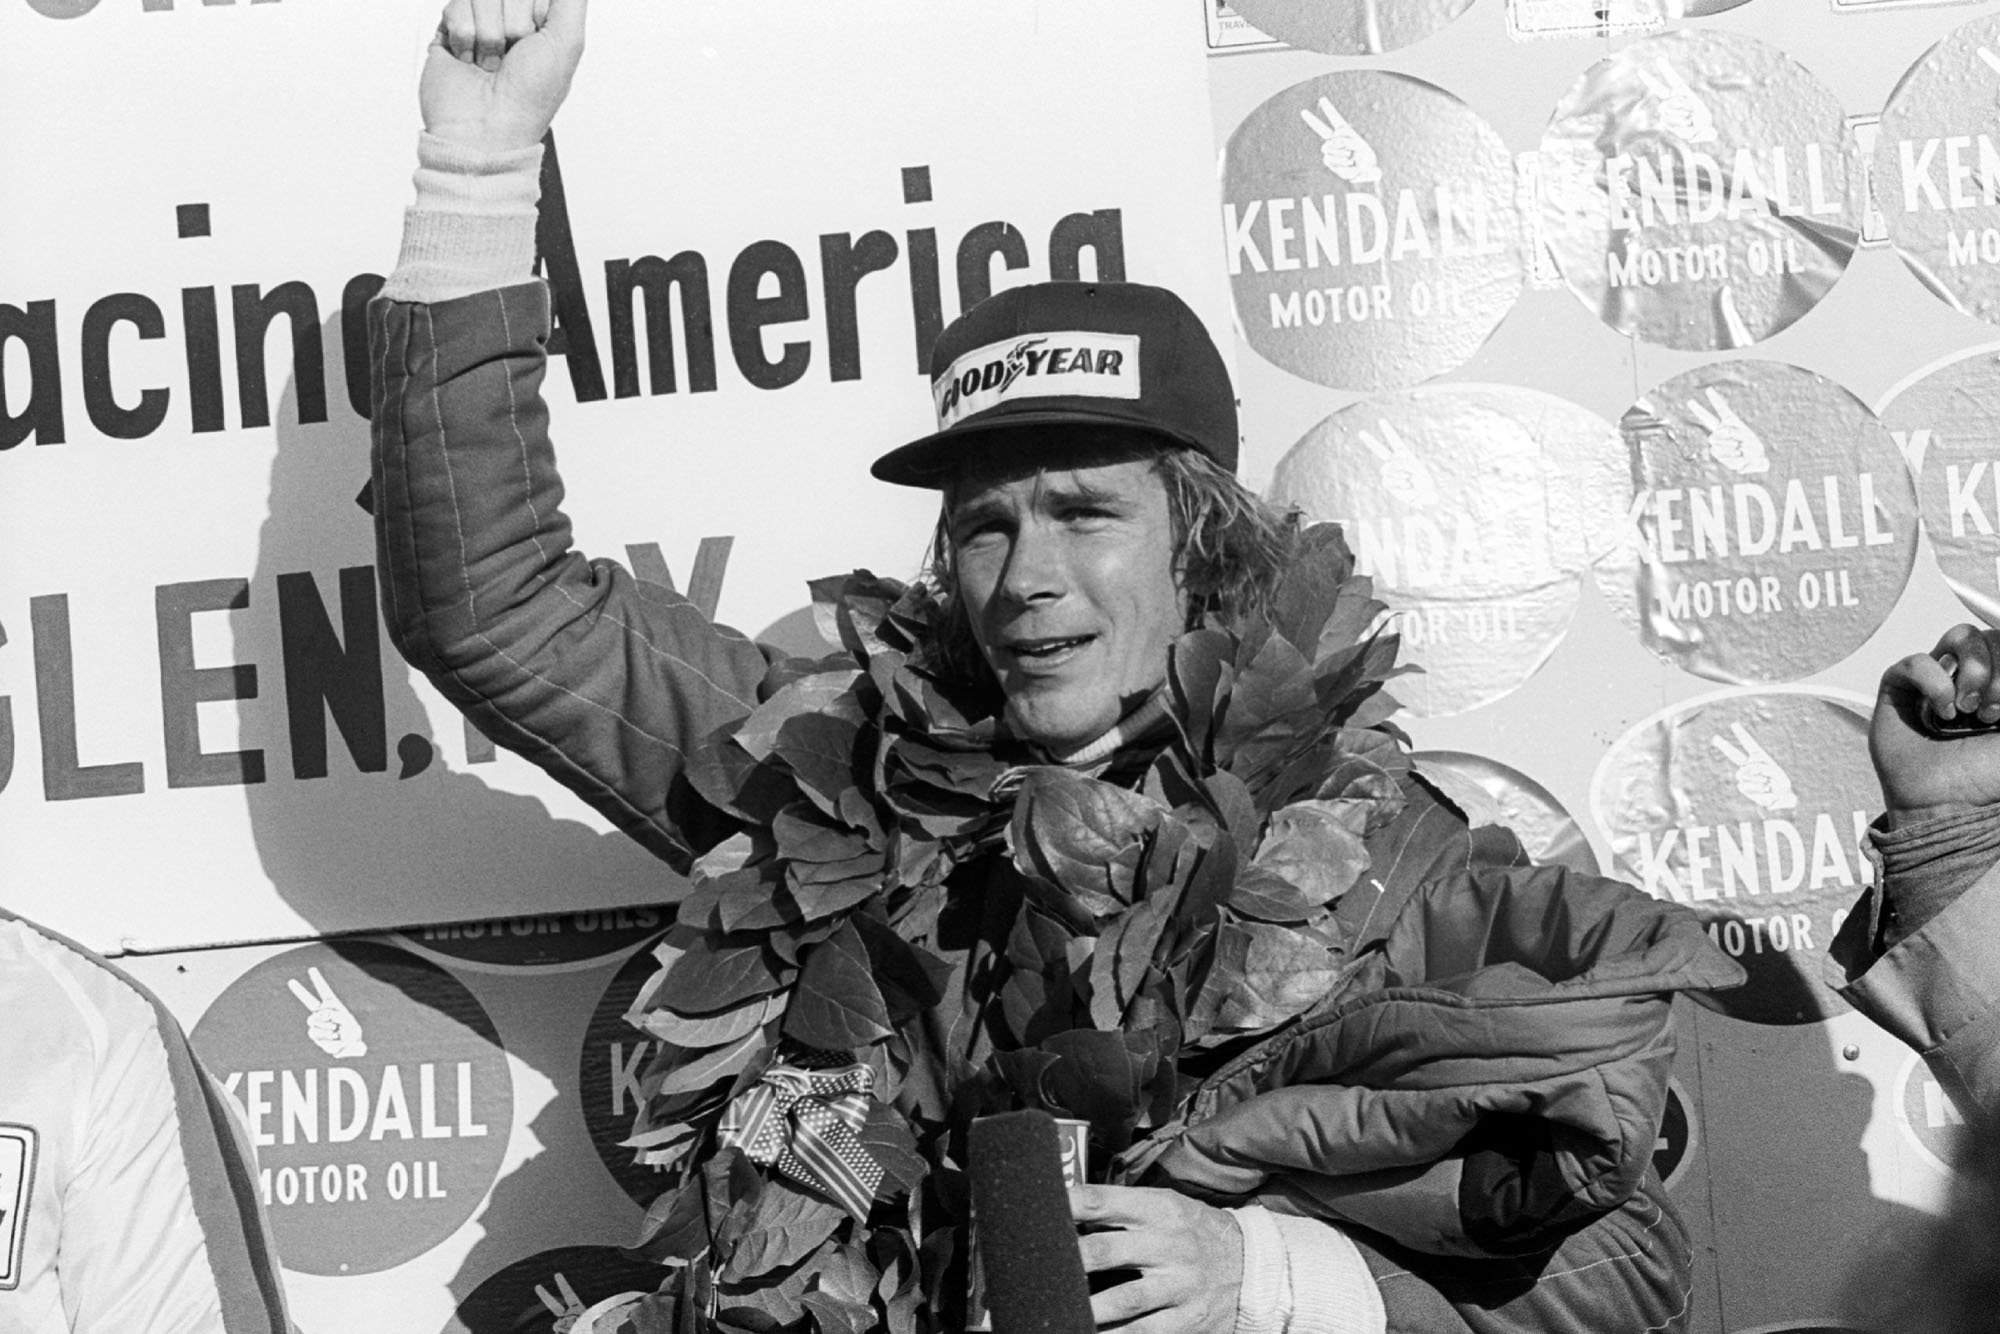 James Hunt (McLaren) celebrates his win on the podium at the 1976 United States Grand Prix East, Watkins Glen.